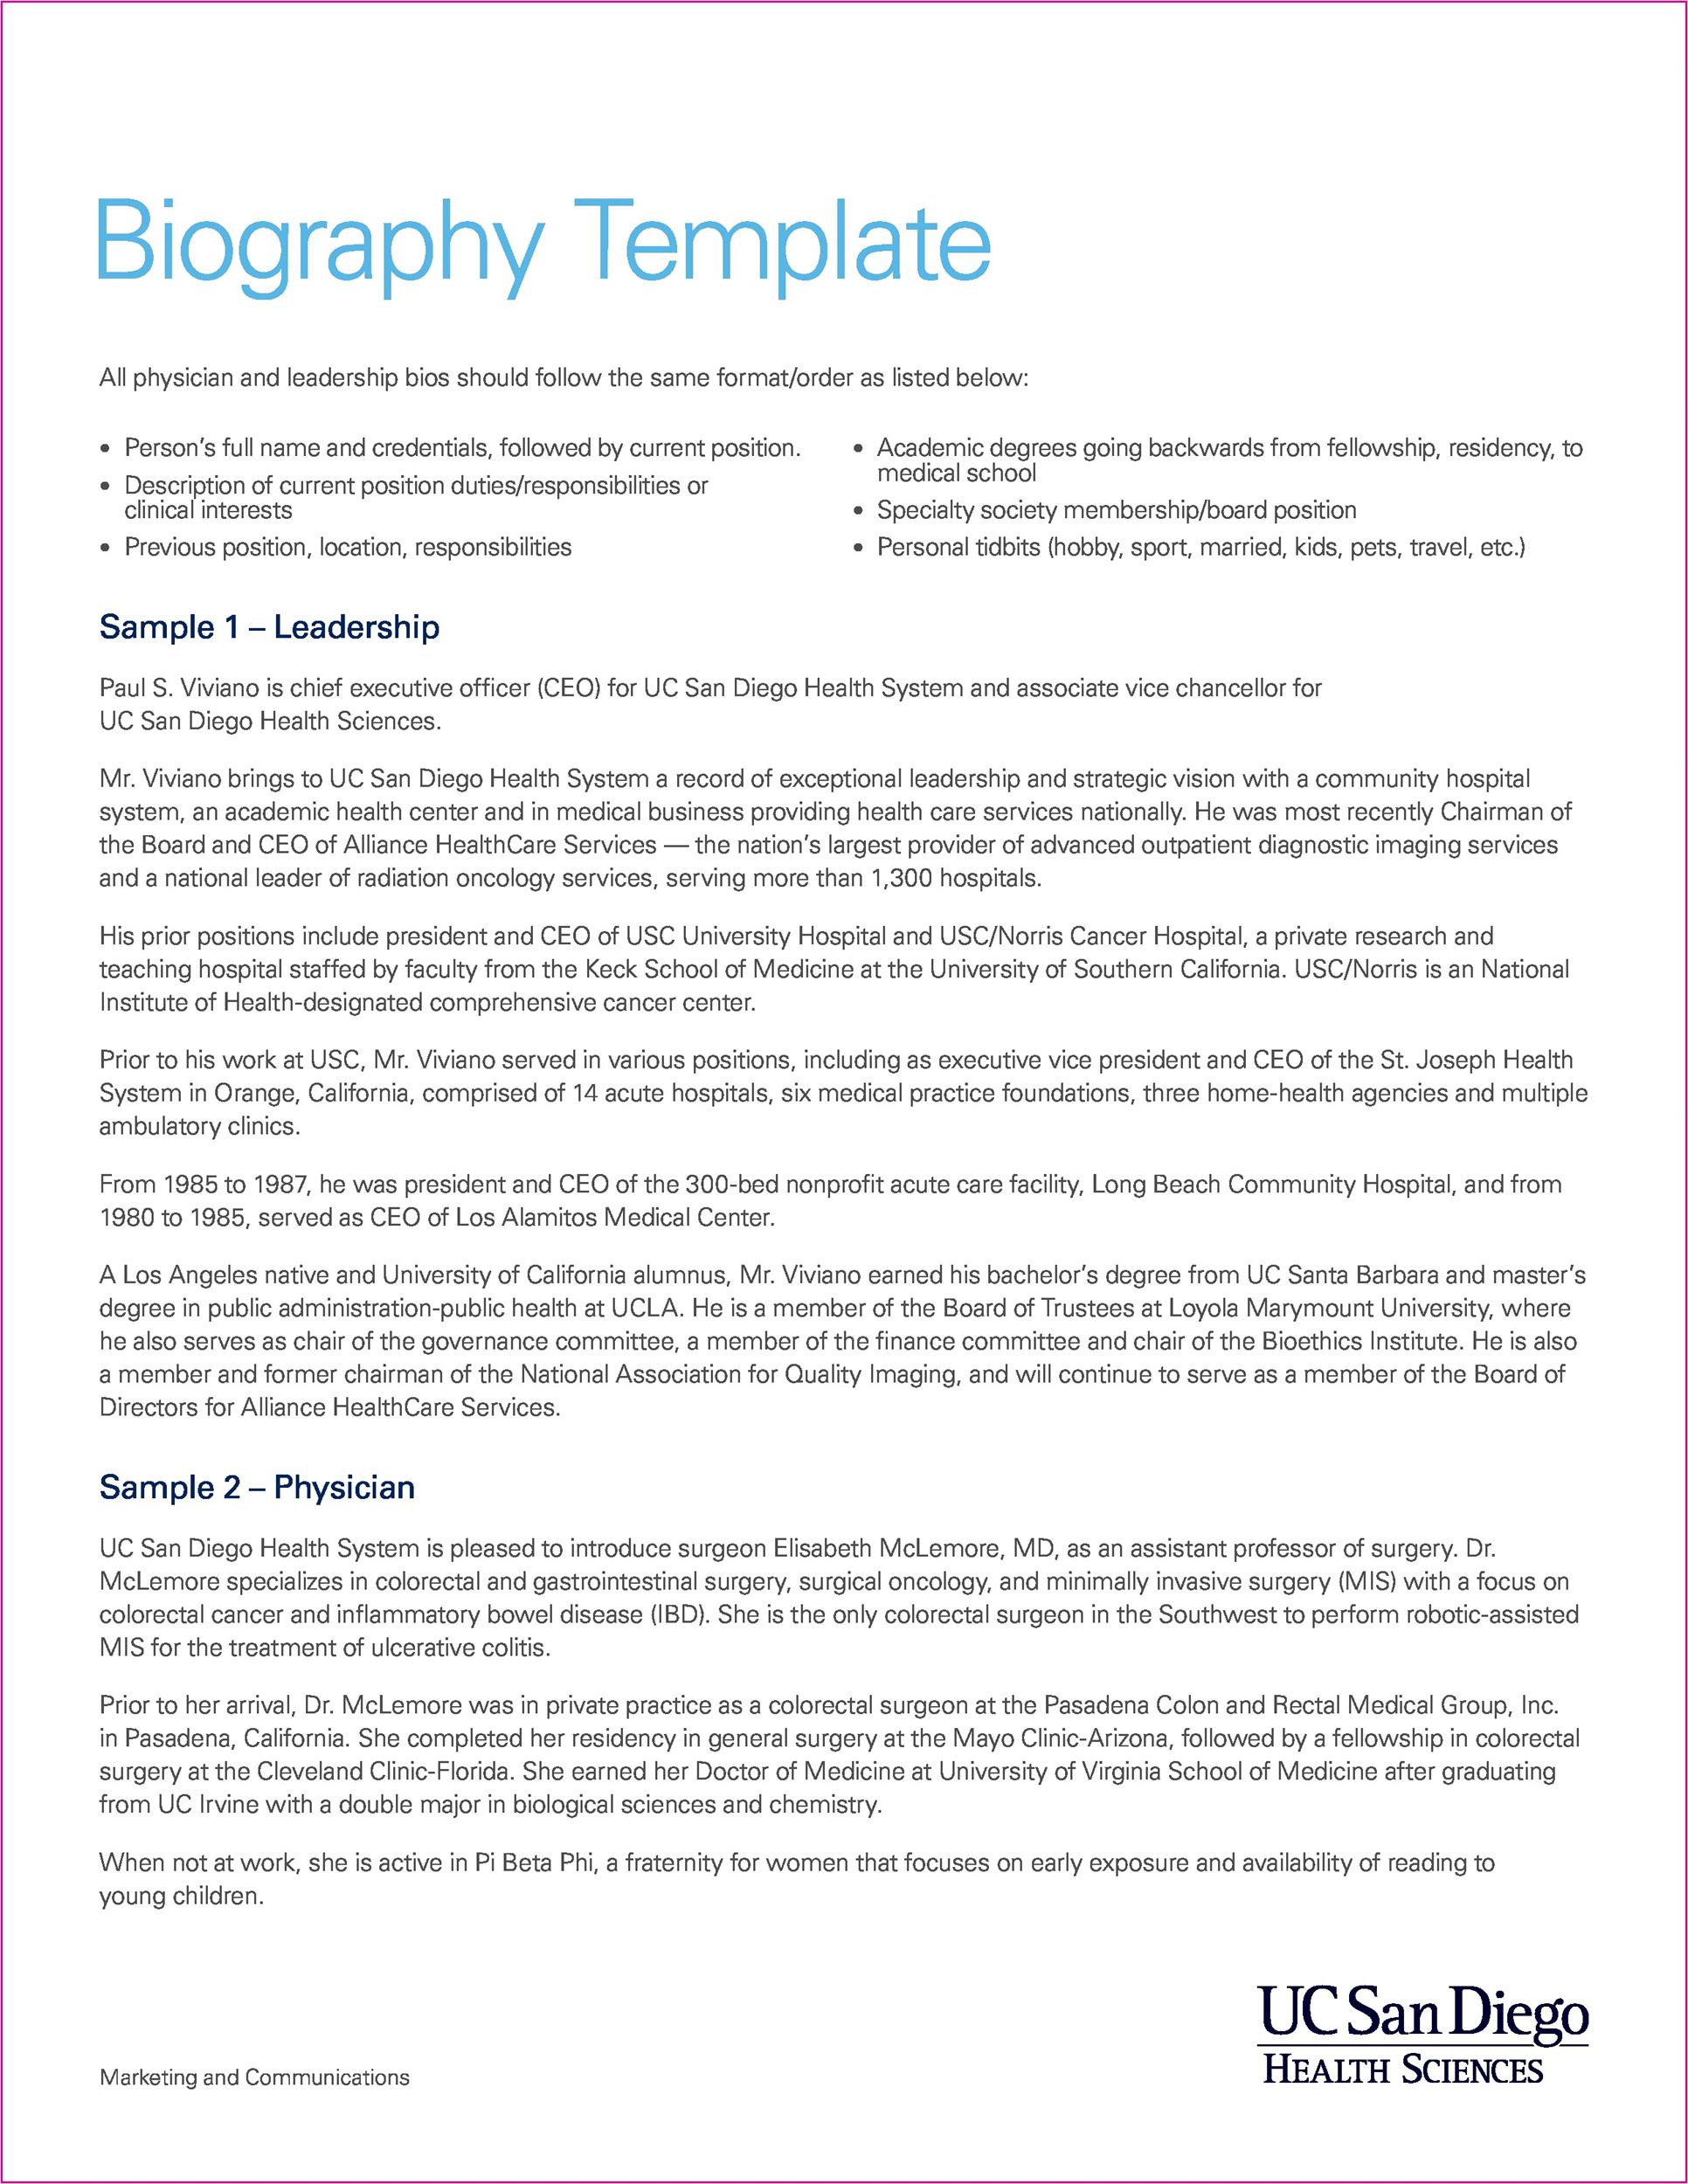 45 Biography Templates  Examples (Personal, Professional)